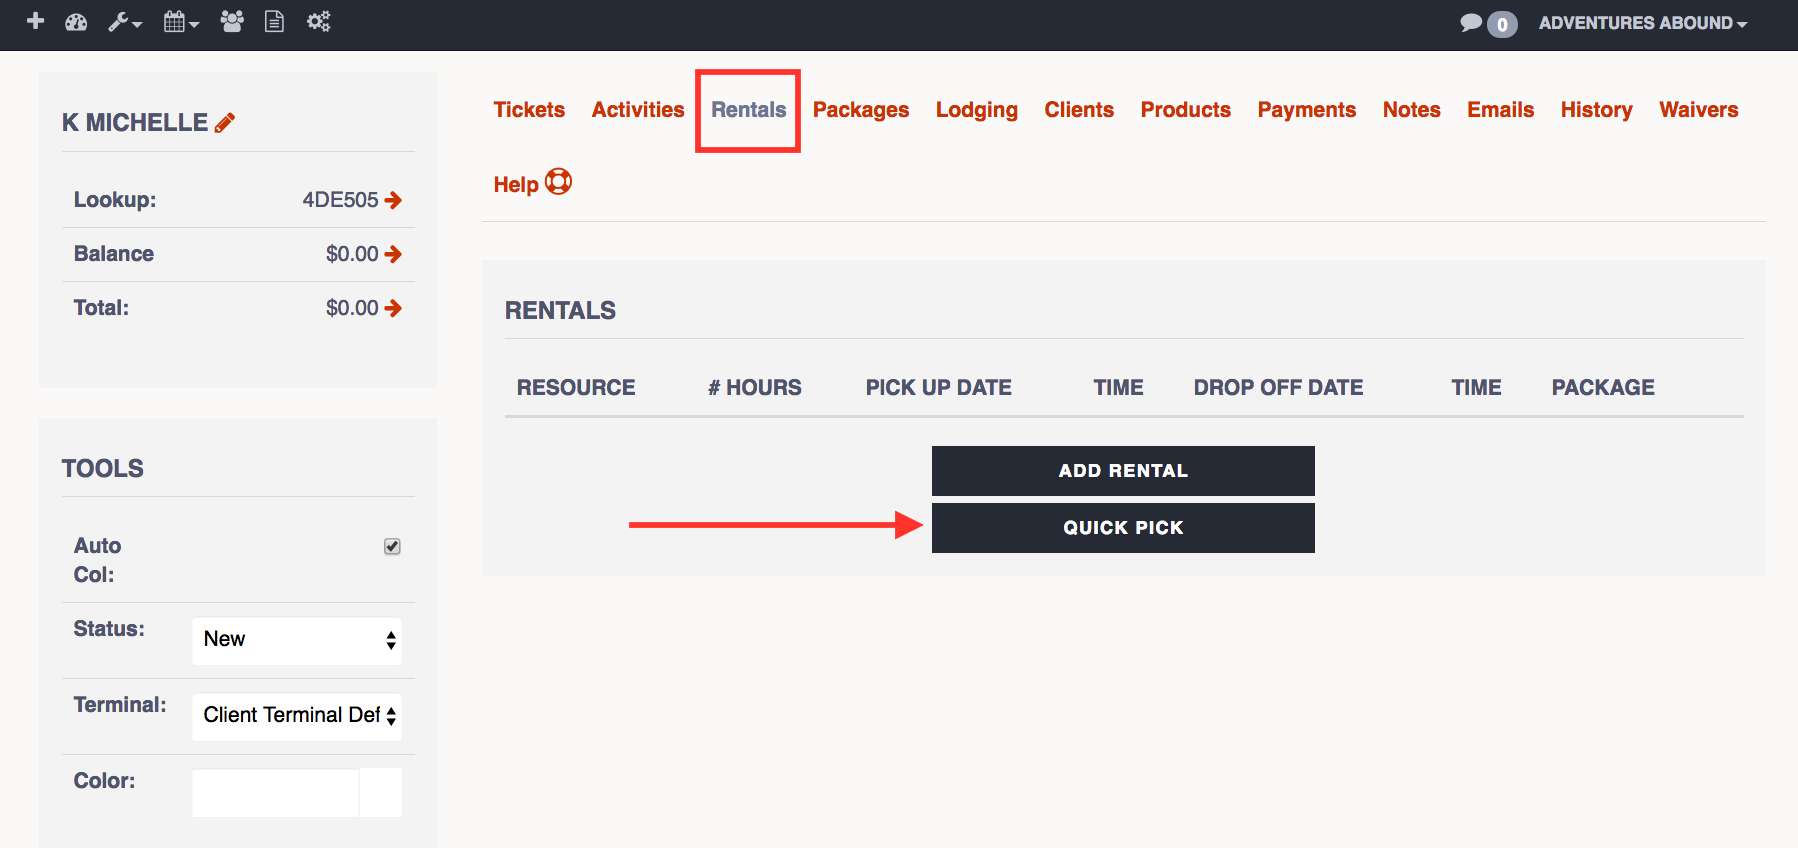 Book A Rental With Quick Pick The Flybook - Can-pick-the-book-quick